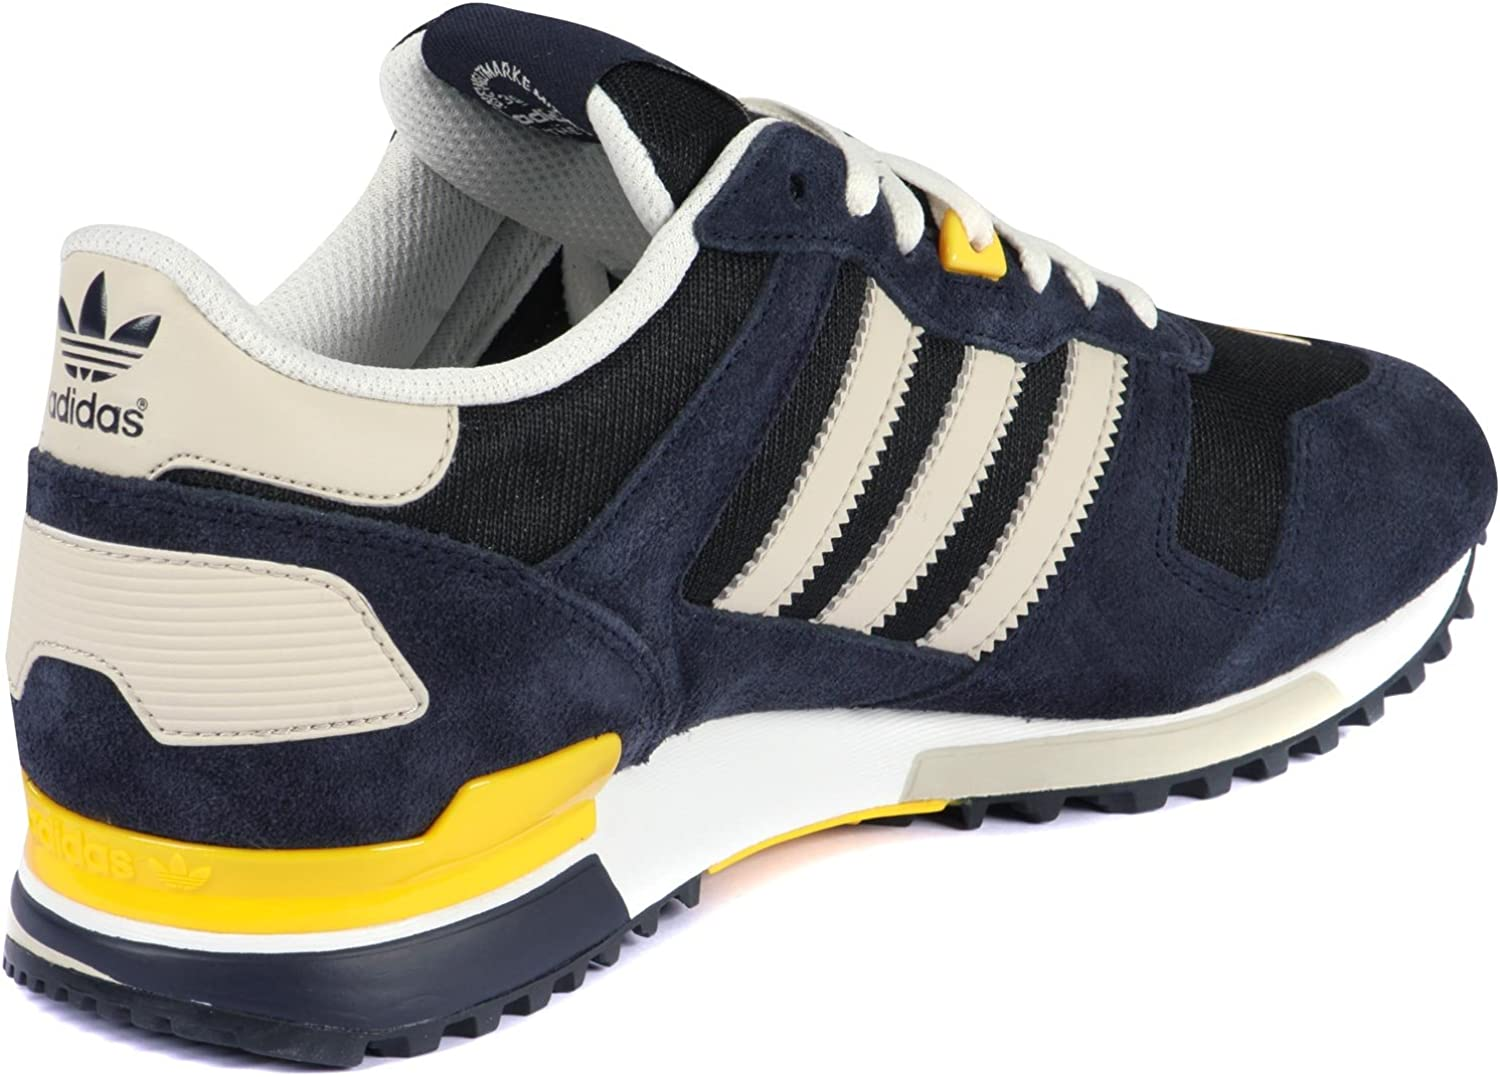 adidas ZX 700 M Trainers Mens Shoes